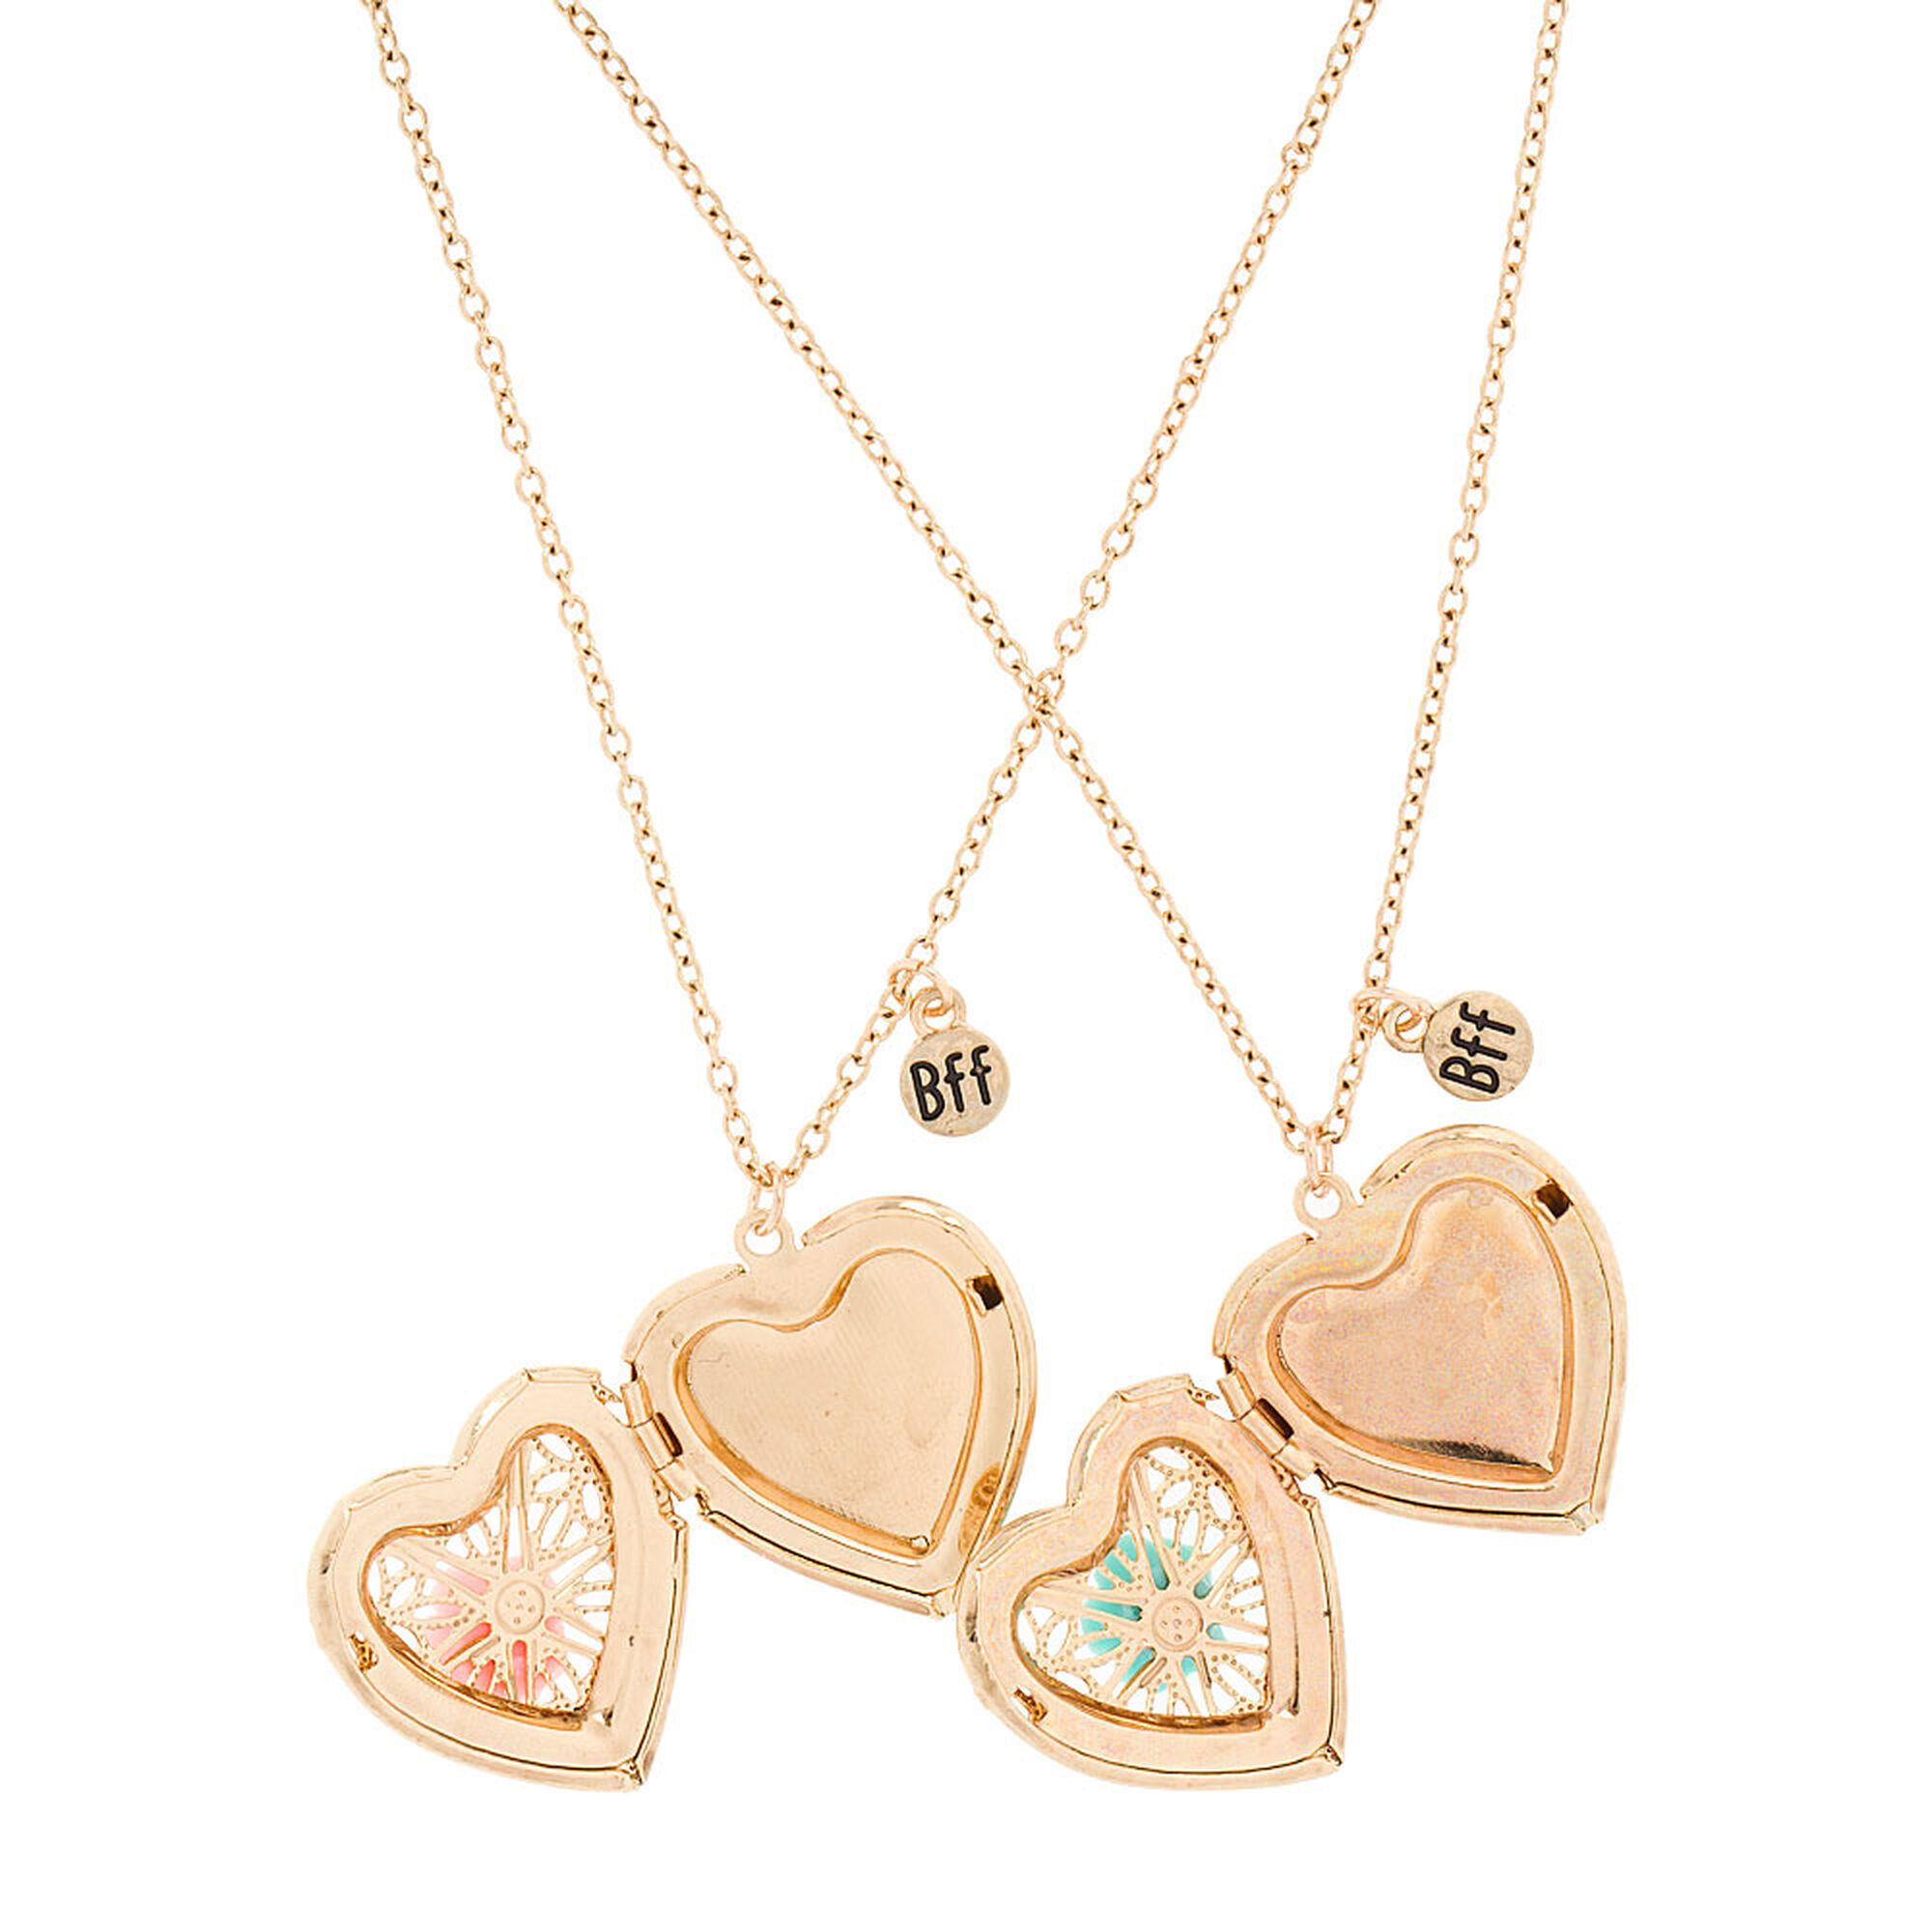 heart lockets set necklace bling best sterling jewelry forever pbx split friend az friends uec